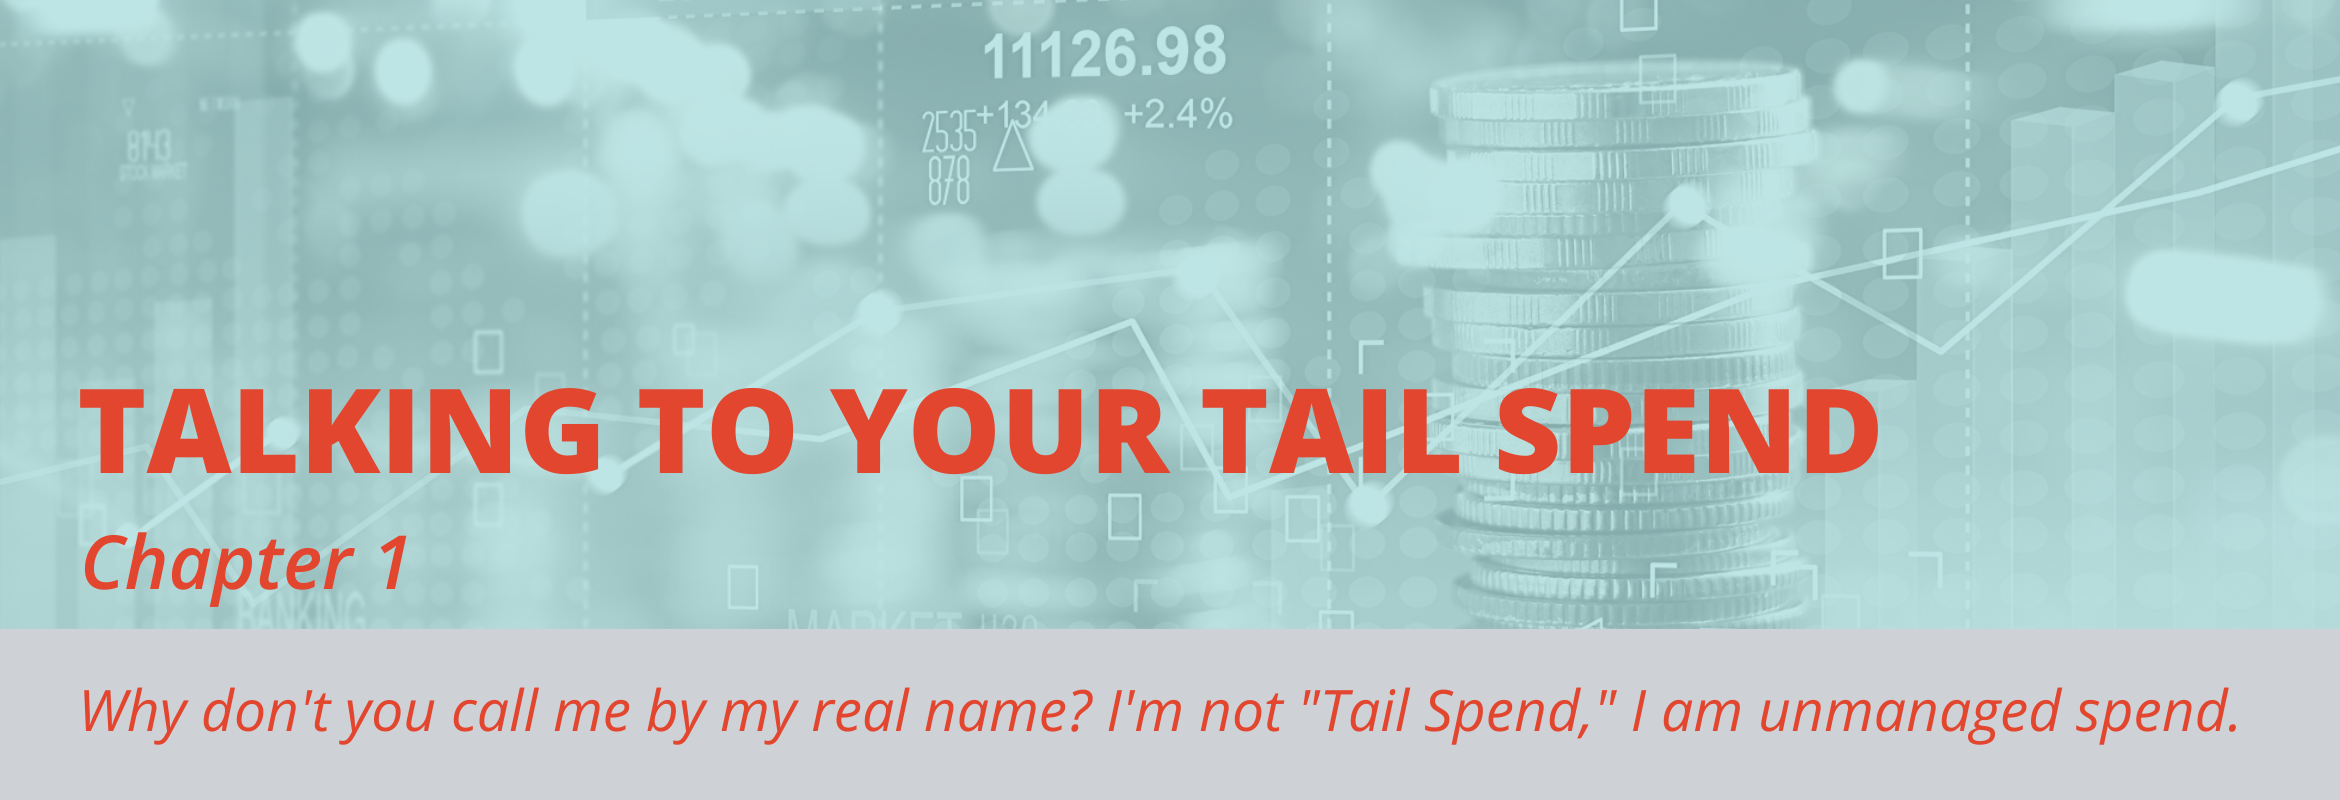 In this blog post, tail spend is defined as unmanaged spend.